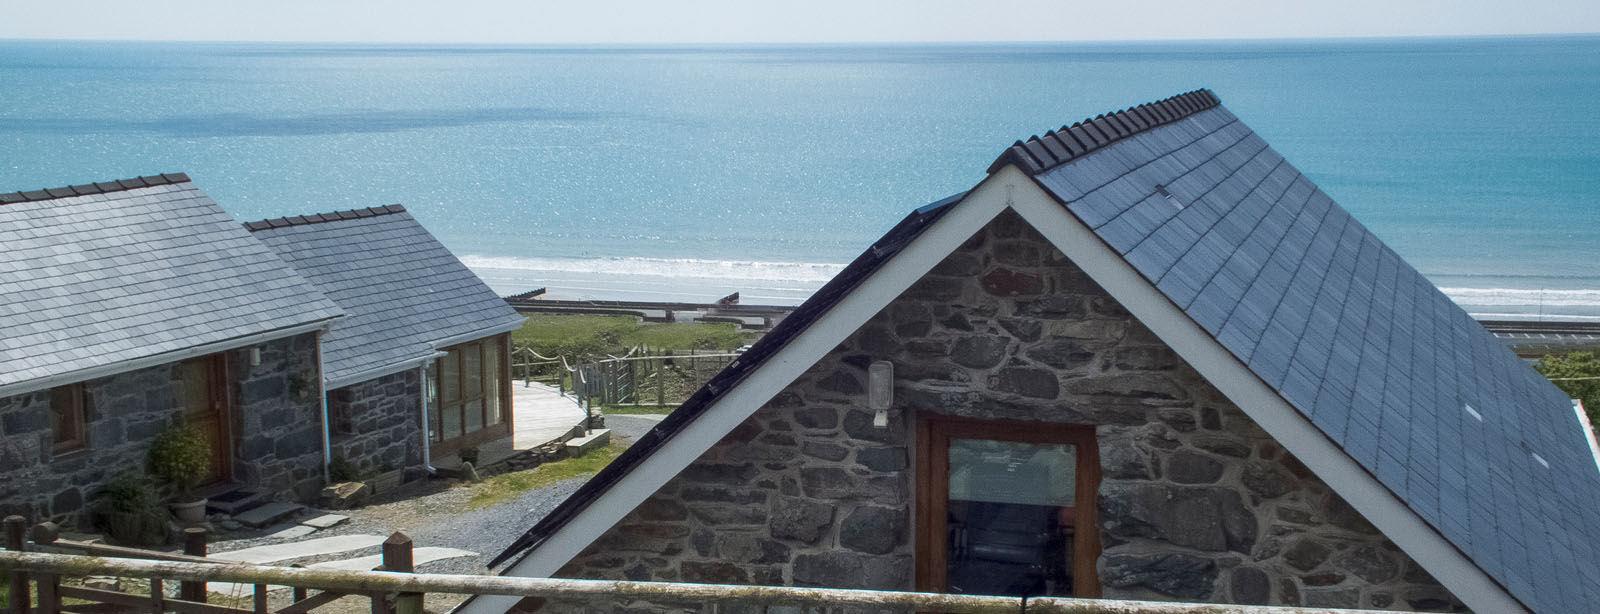 Holiday Cottages i North Wales